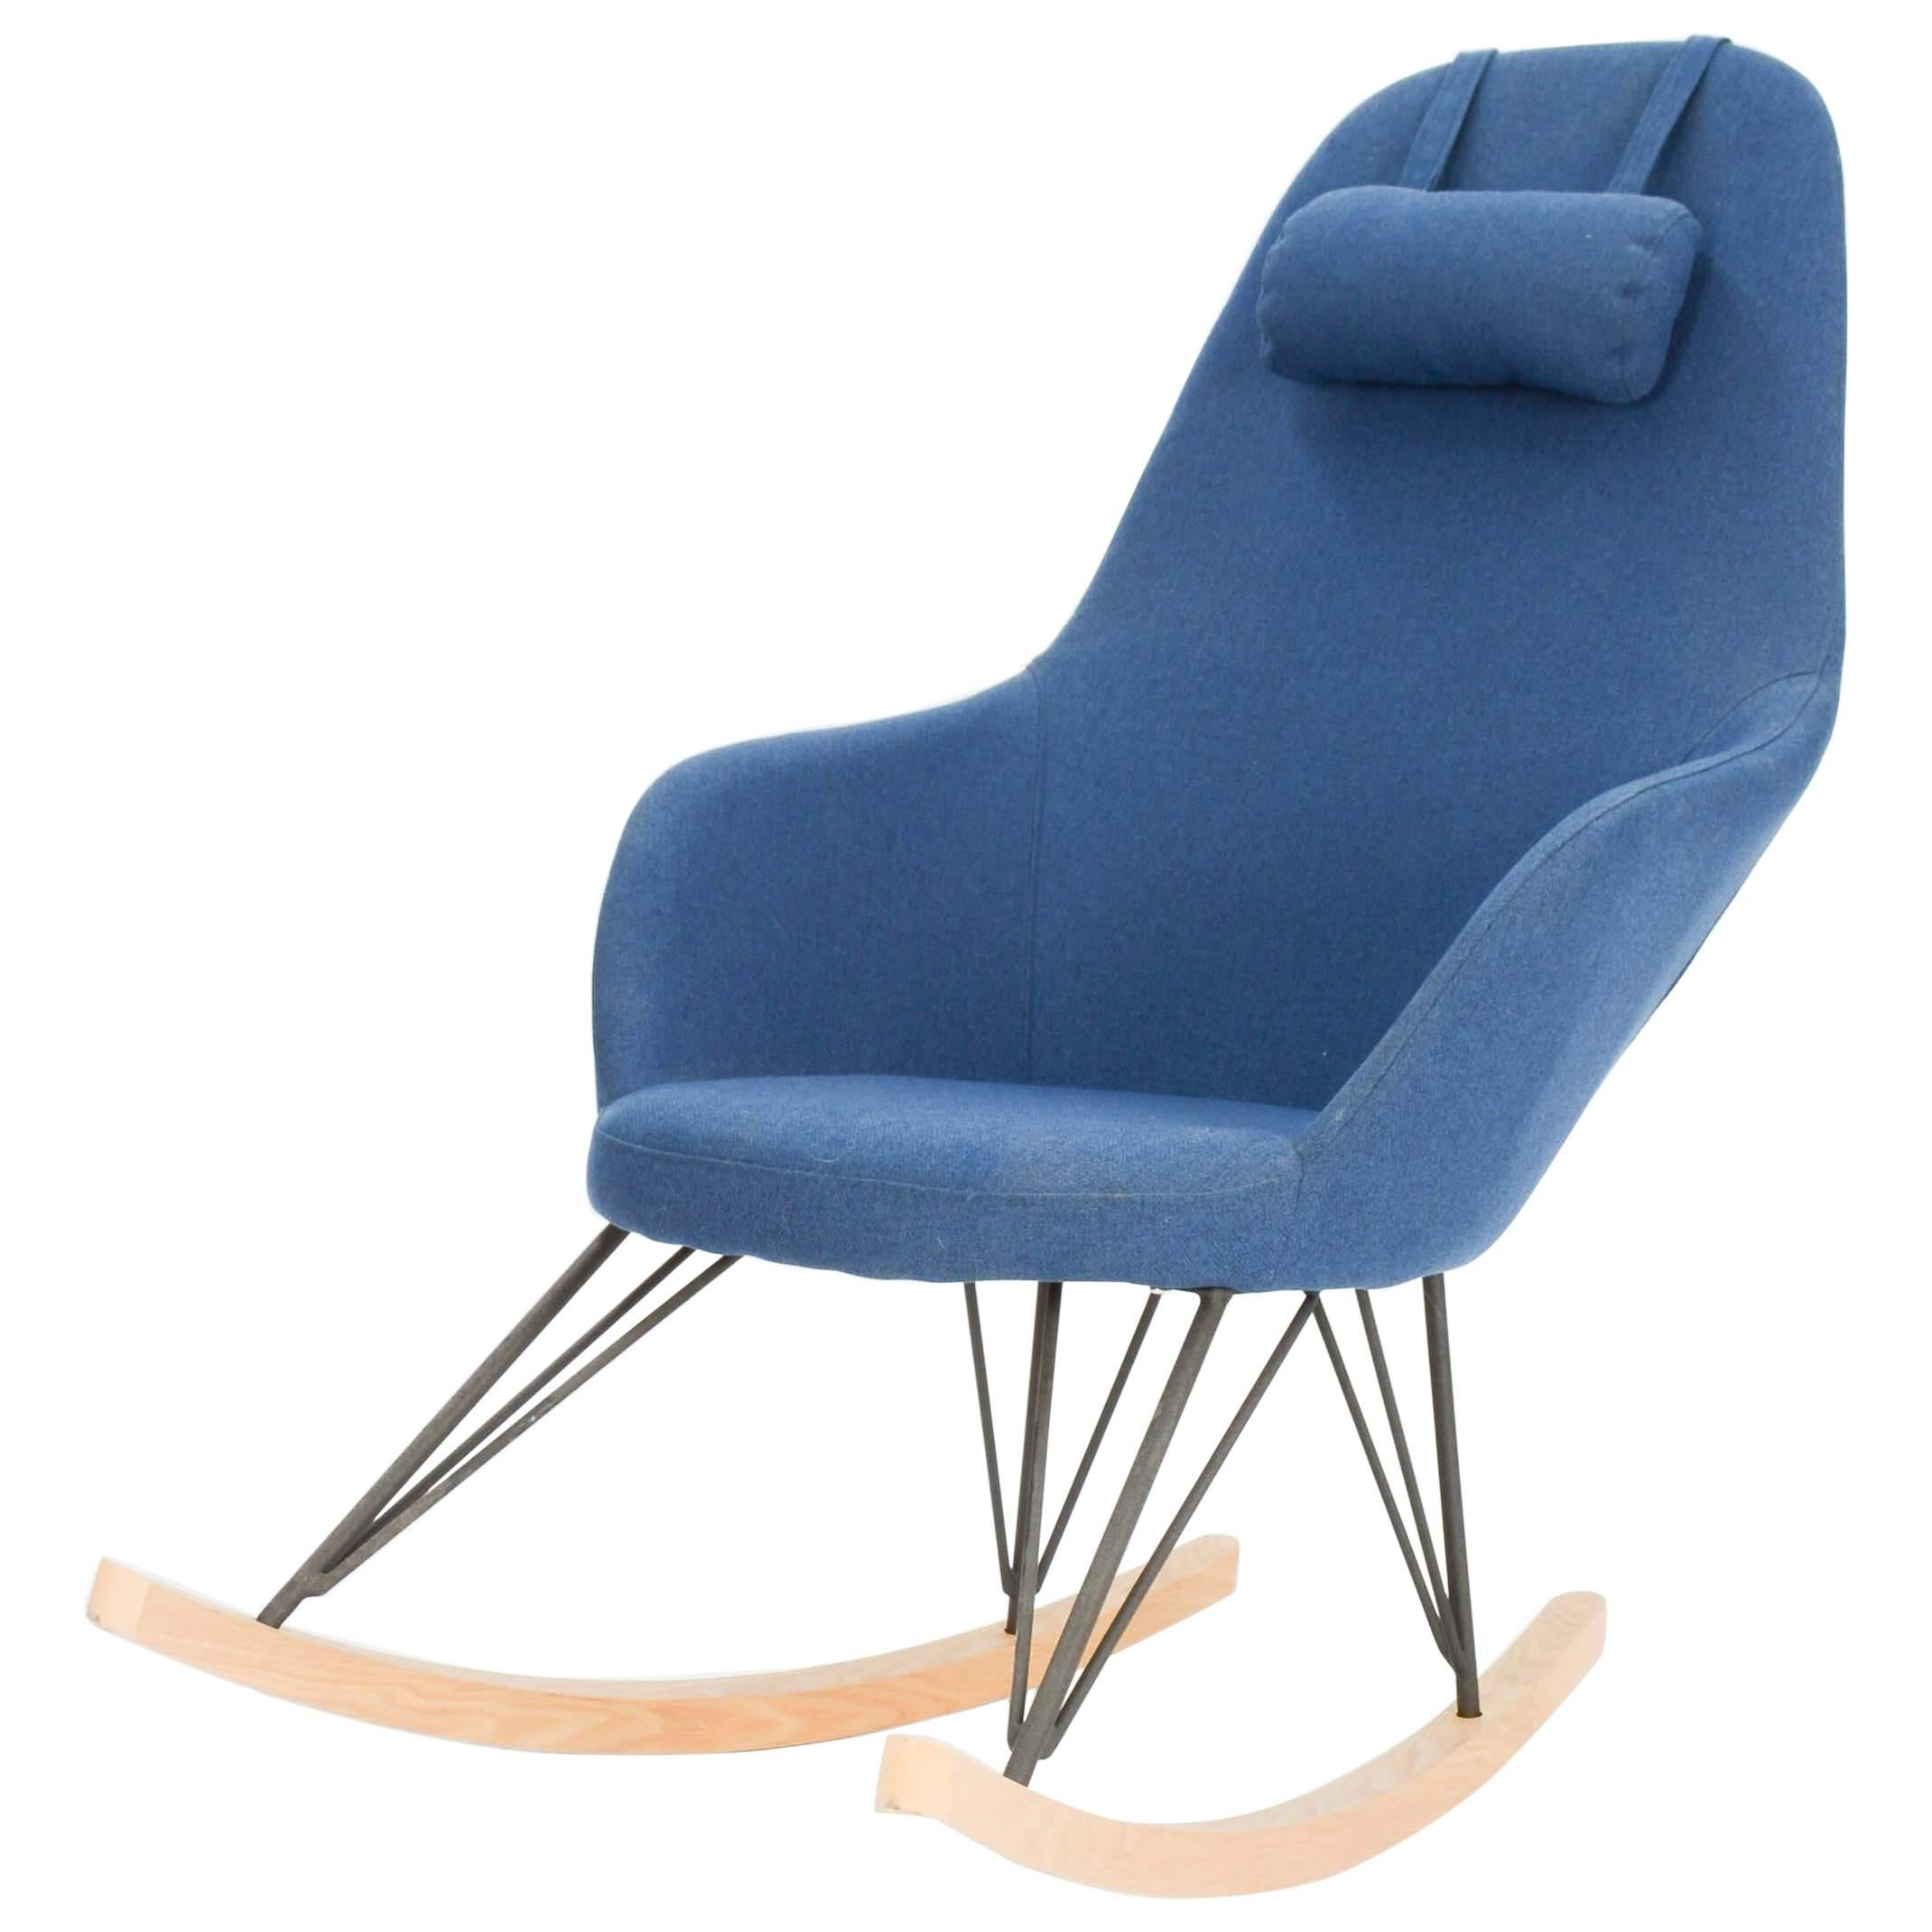 Modernist High Back Rocking Chair In The Style Of The Memphis Movement Of  Italy For Sale